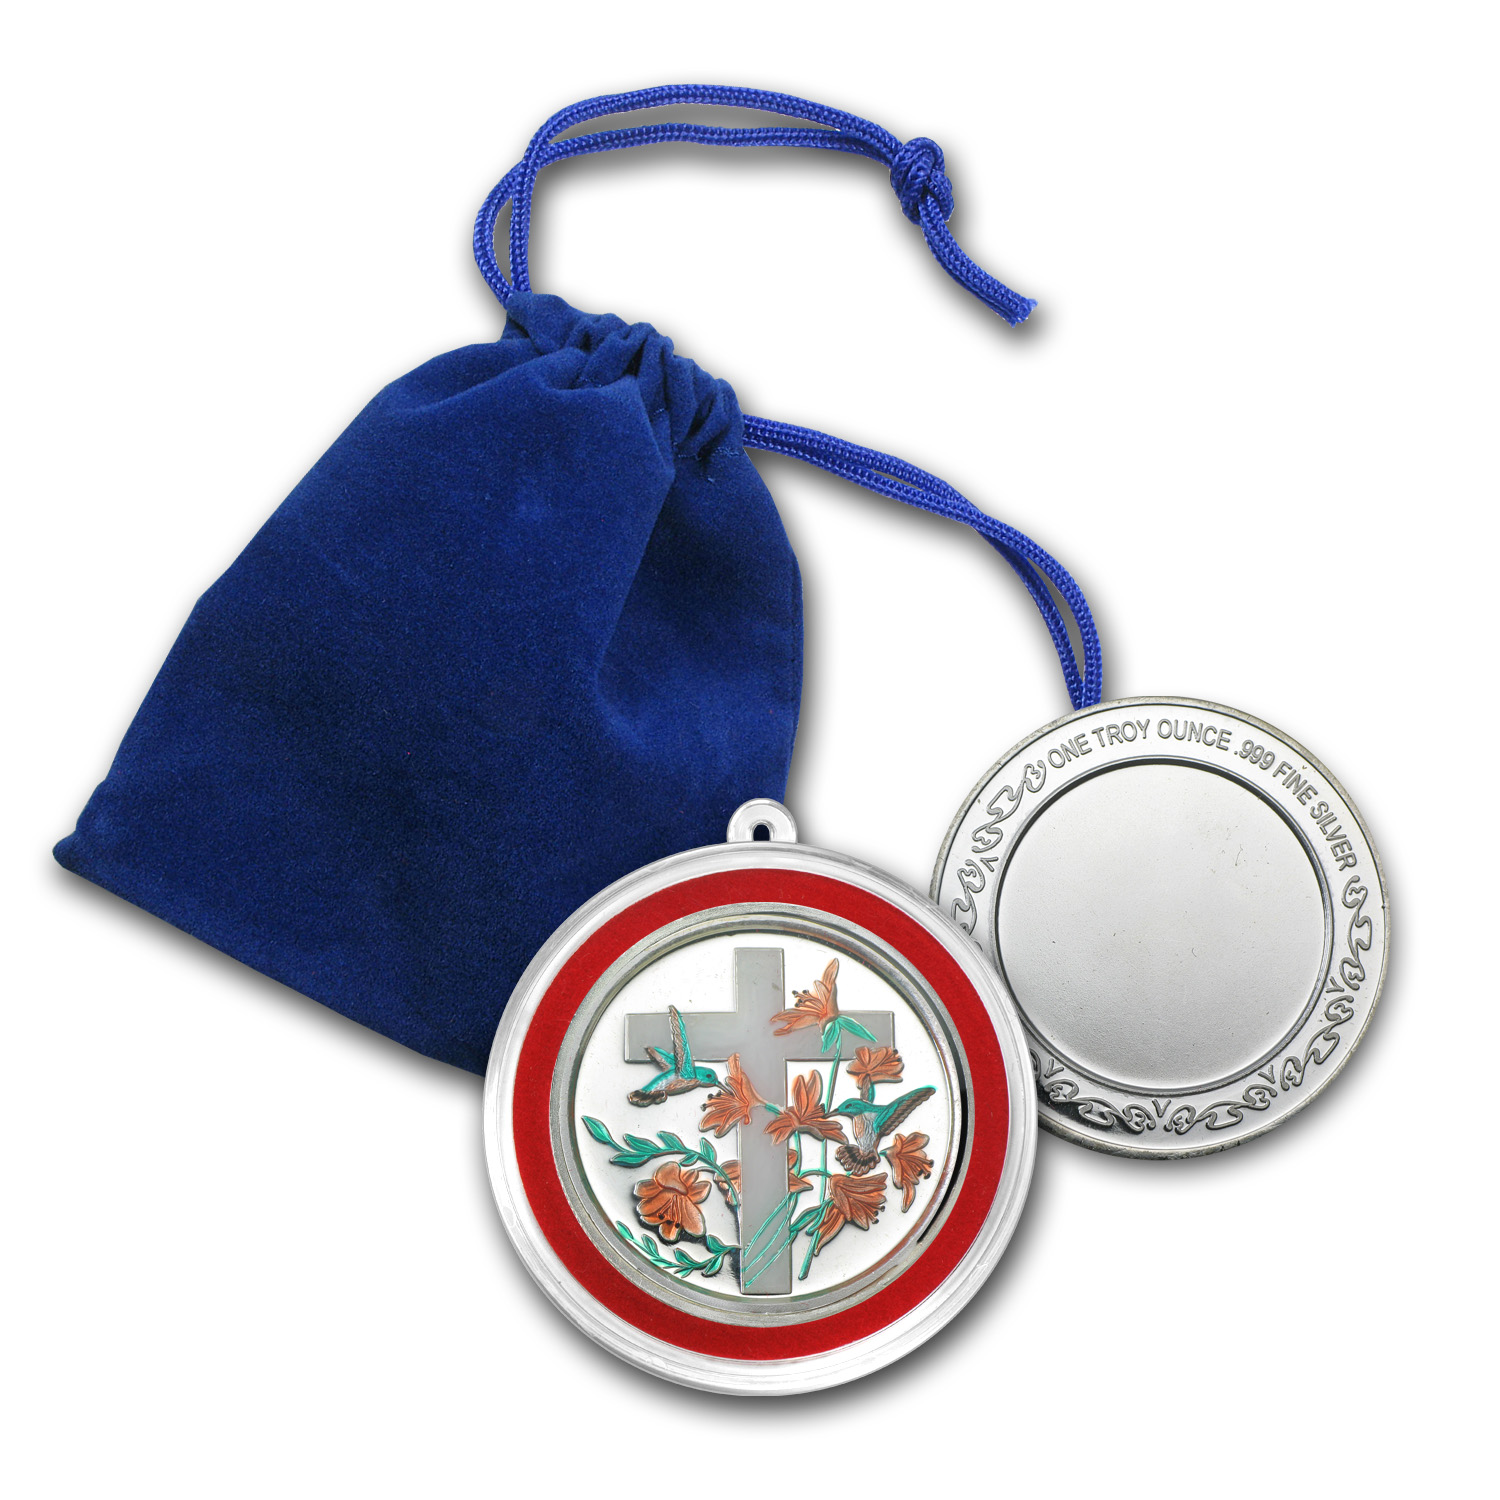 1 oz Silver Rnd - Religious Cross (Enameled, w/Blue Pouch & Cap)